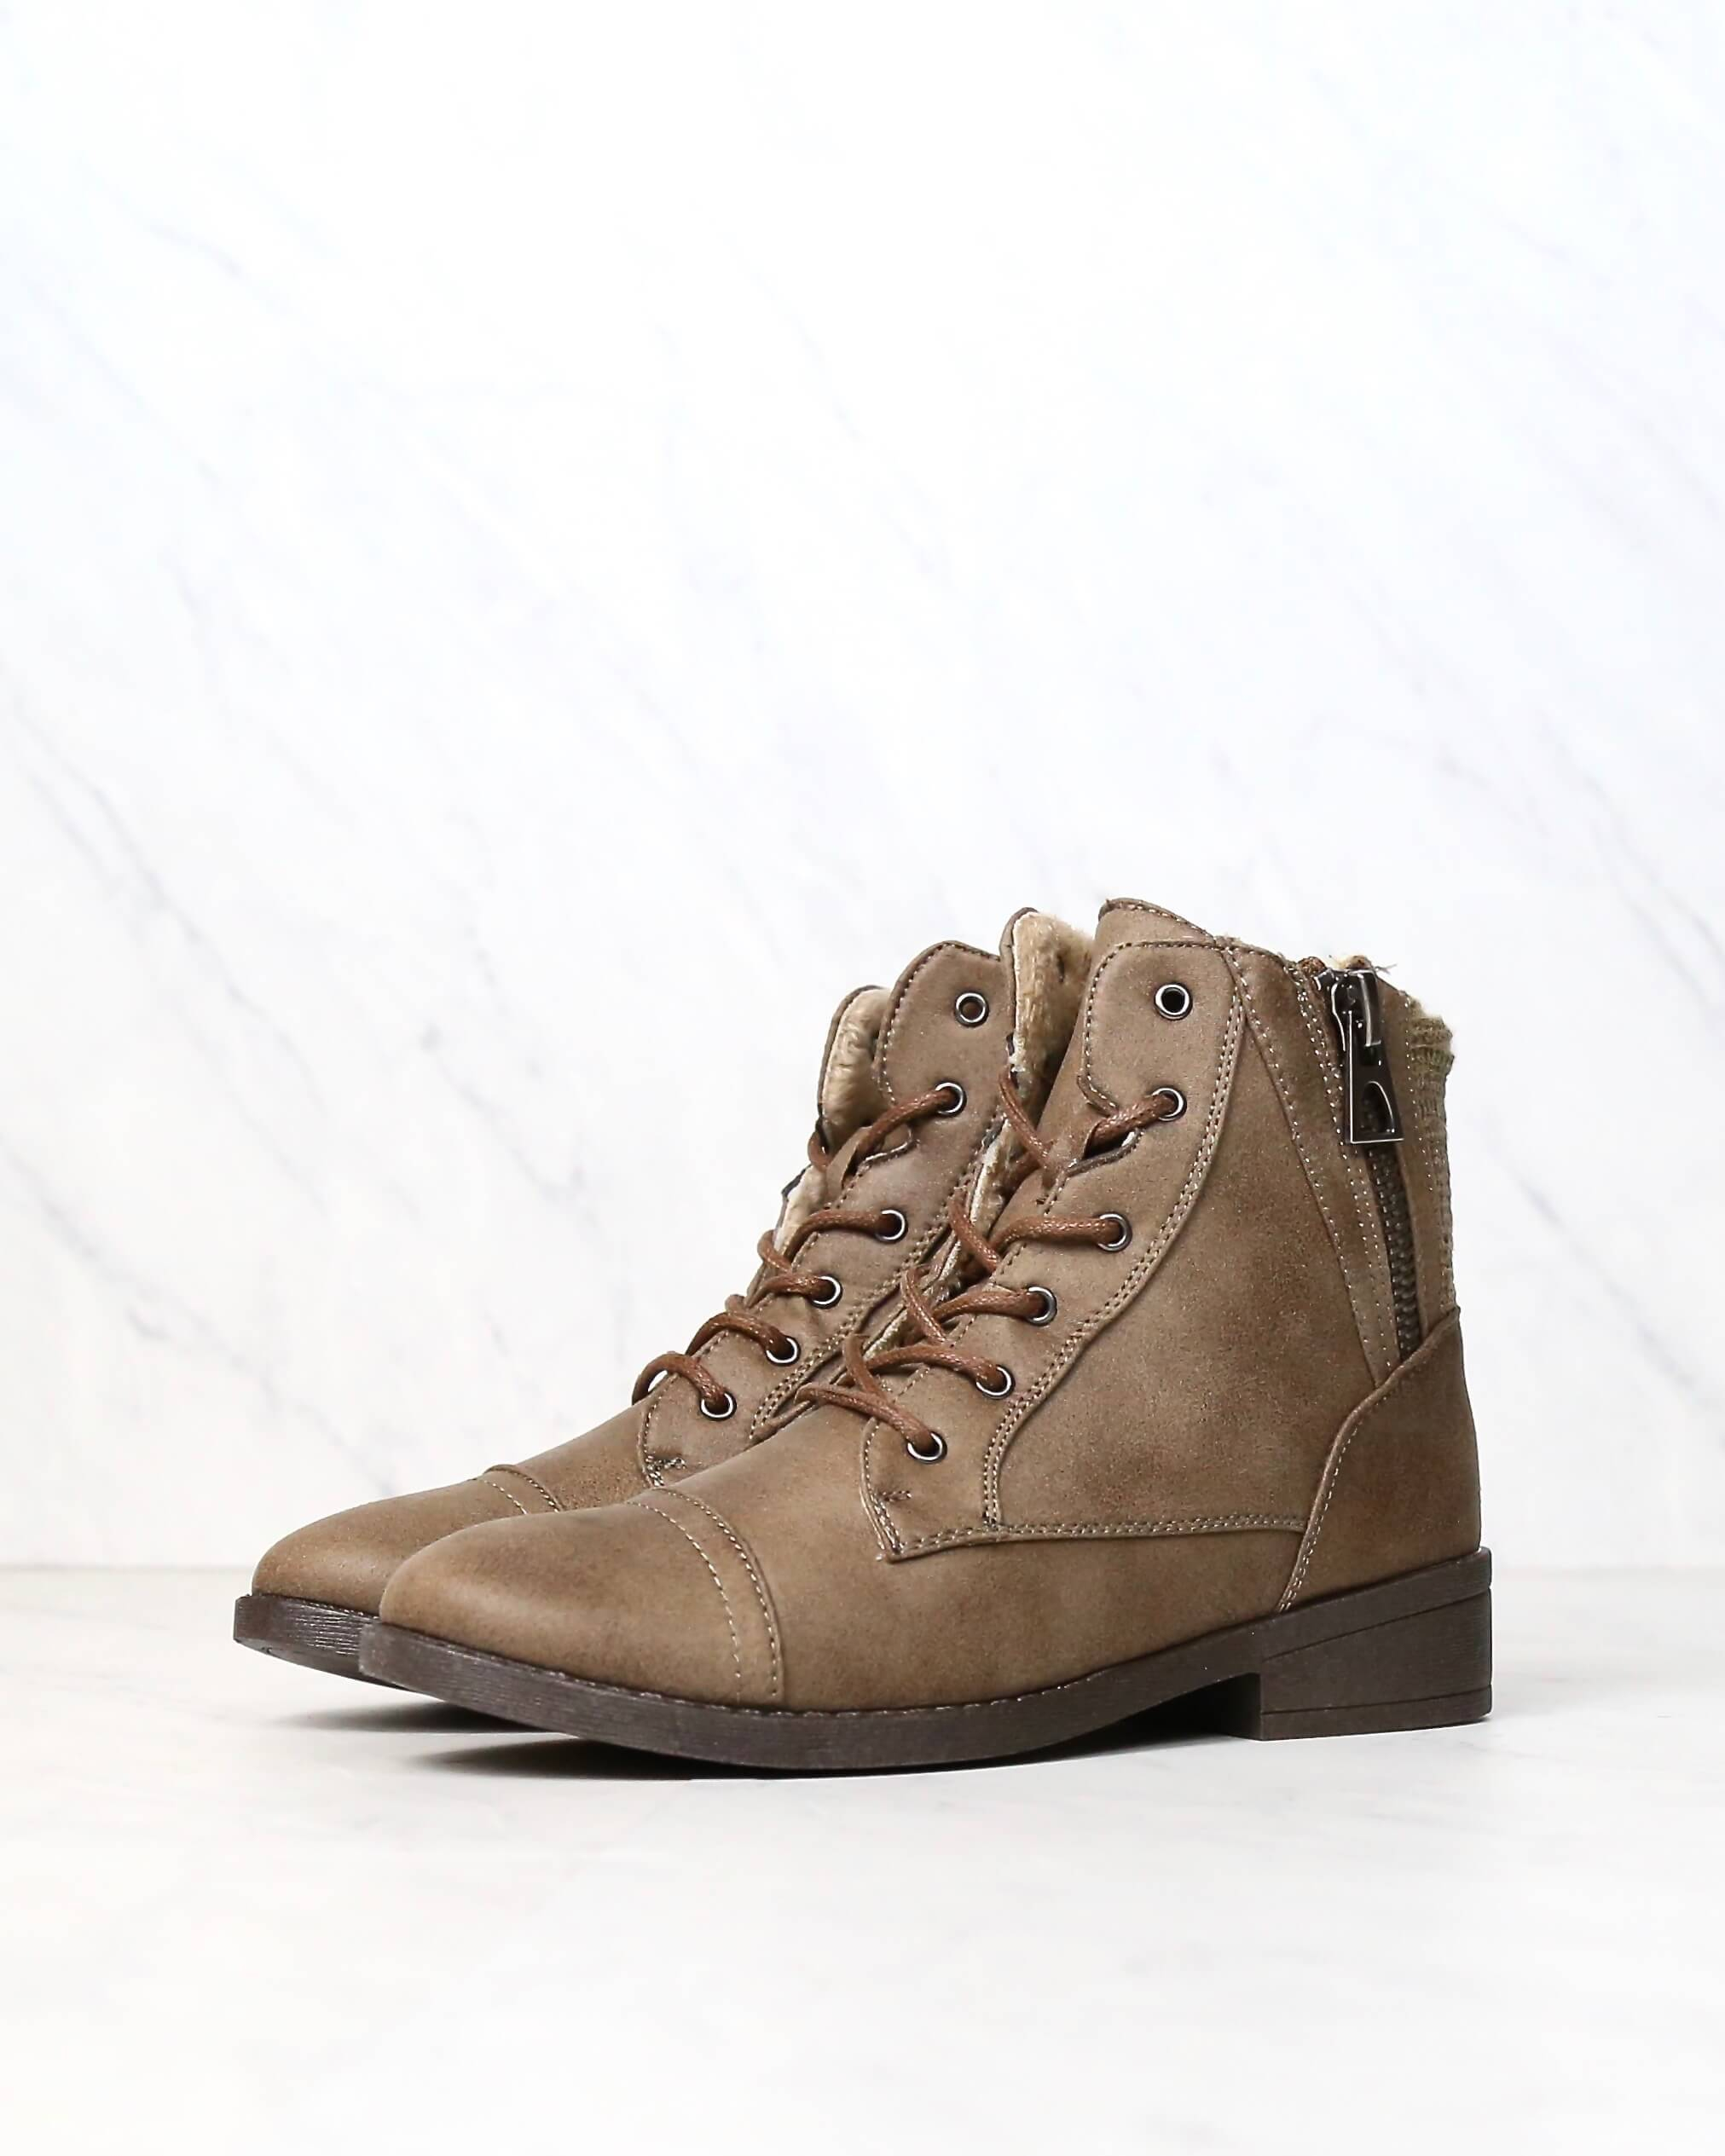 Image of Brielle Ankle Sweater Booties with Side Zippers in Taupe